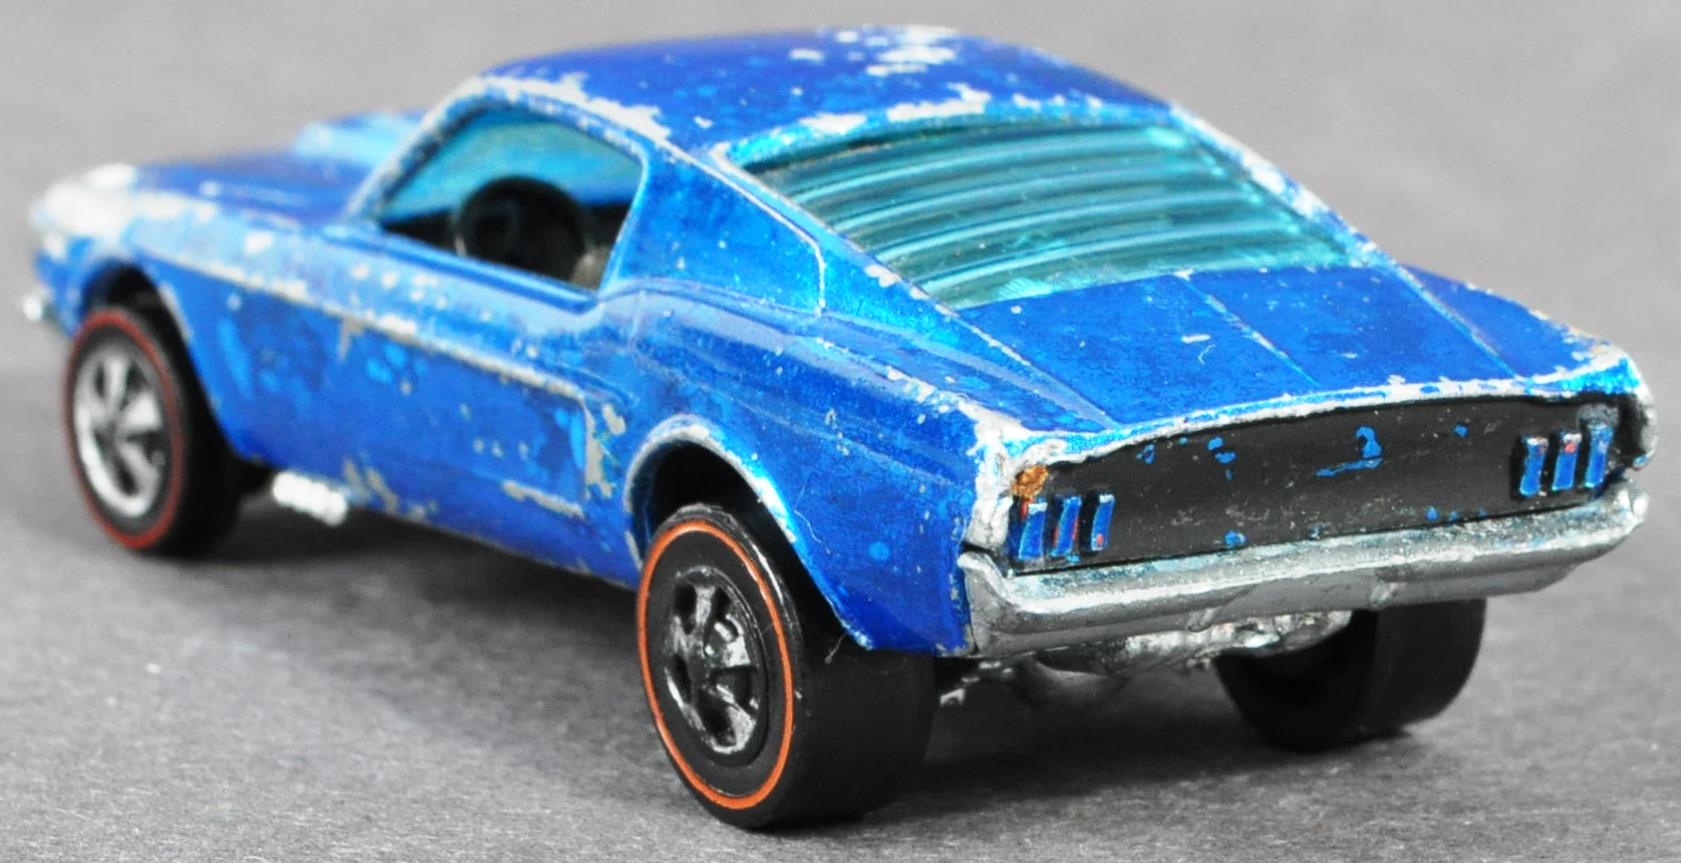 RARE HOT WHEELS CUSTOM MUSTANG WITH LOUVERED WINDOW - Image 4 of 5